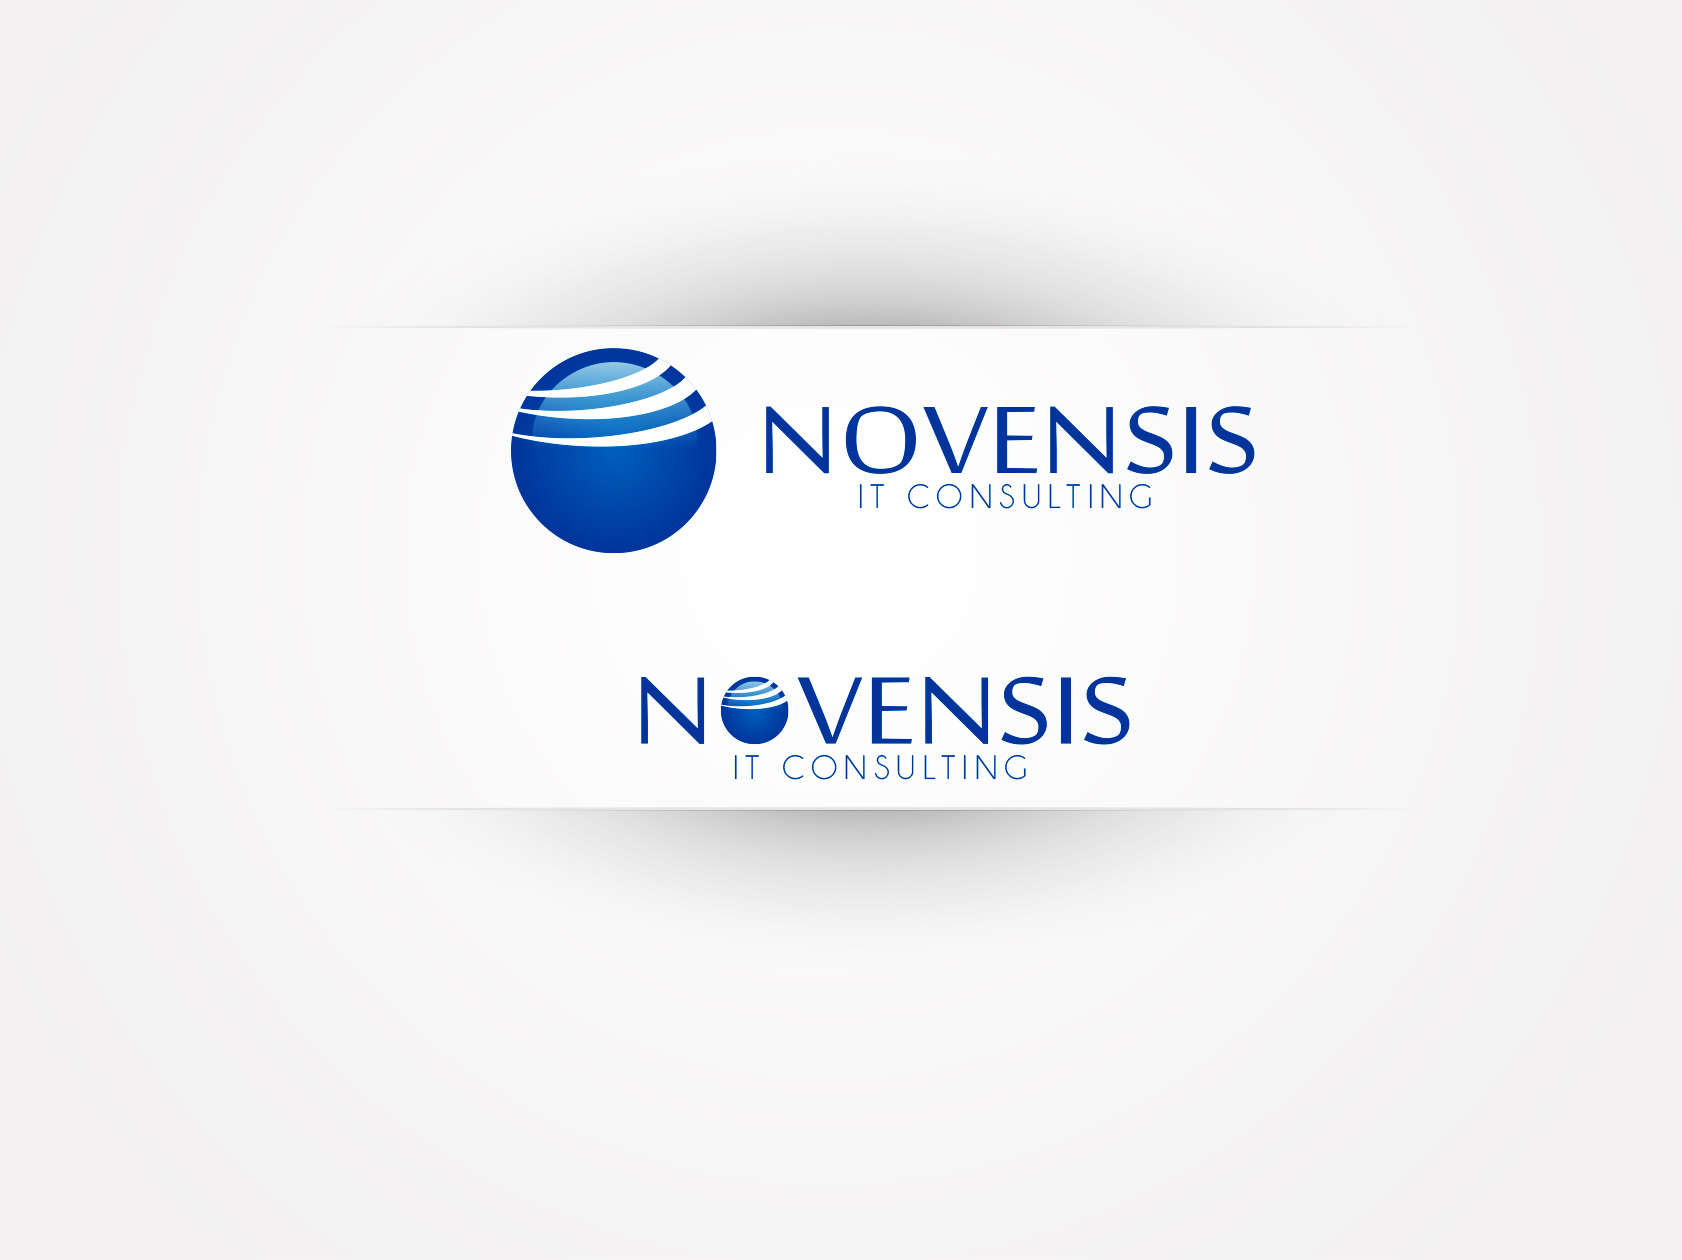 Logo Design by OmegaDesigns - Entry No. 186 in the Logo Design Contest Novensis Logo Design.